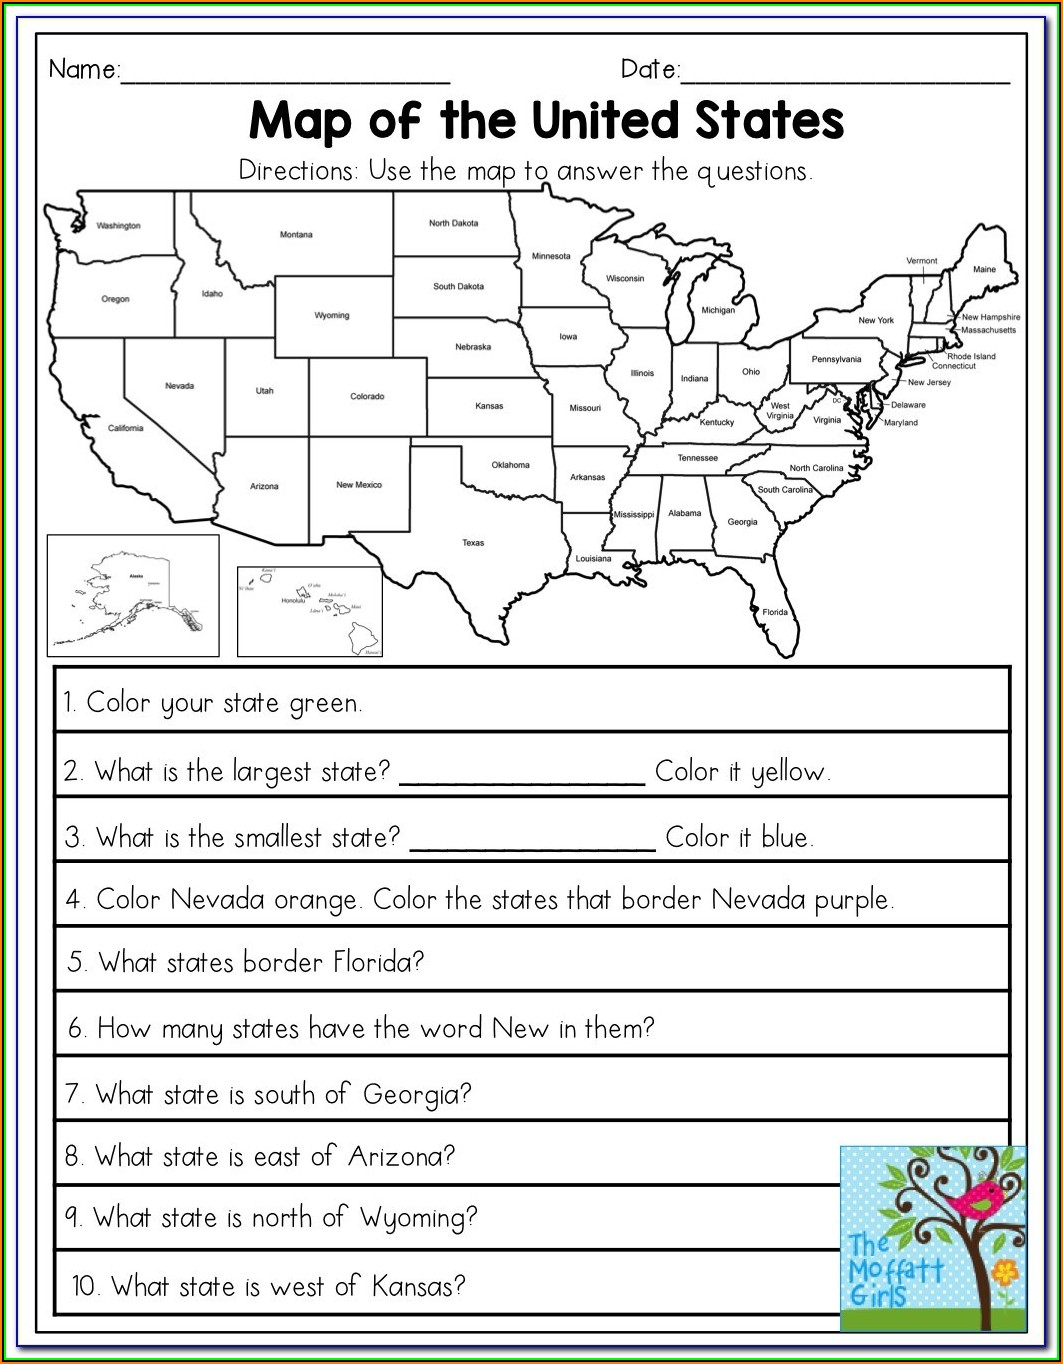 Map Test Practice 3rd Grade Pdf